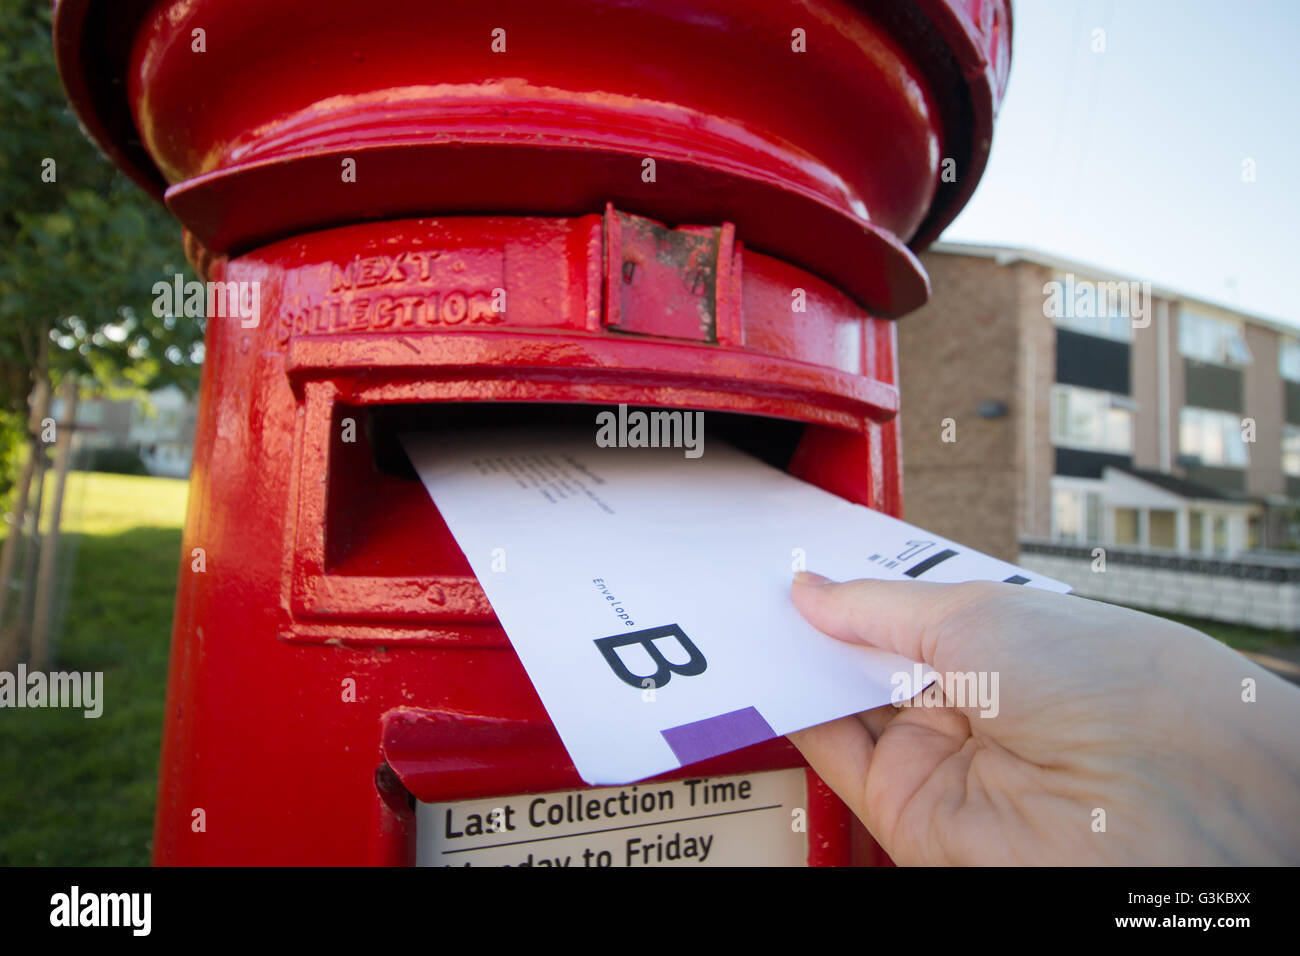 A UK postal vote being put into a post box. - Stock Image